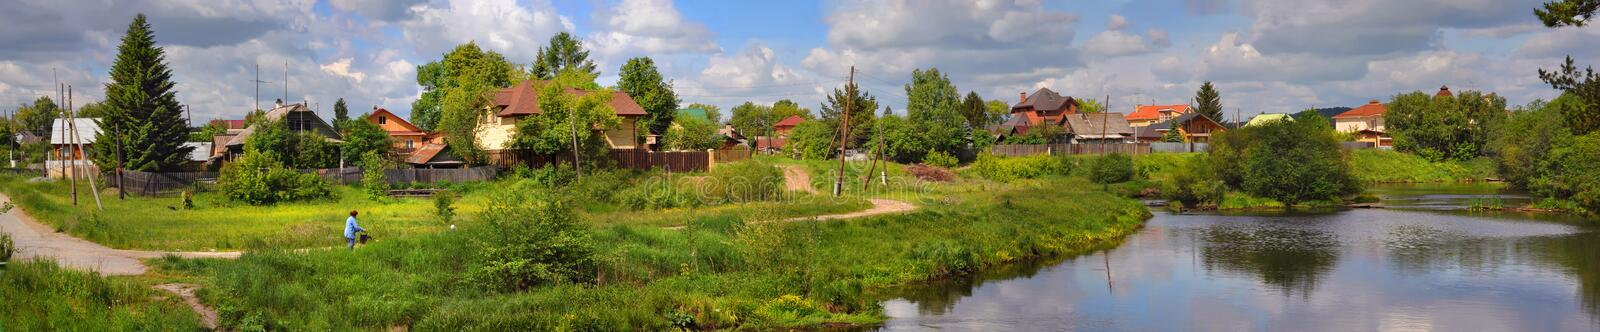 Village russe photo libre de droits